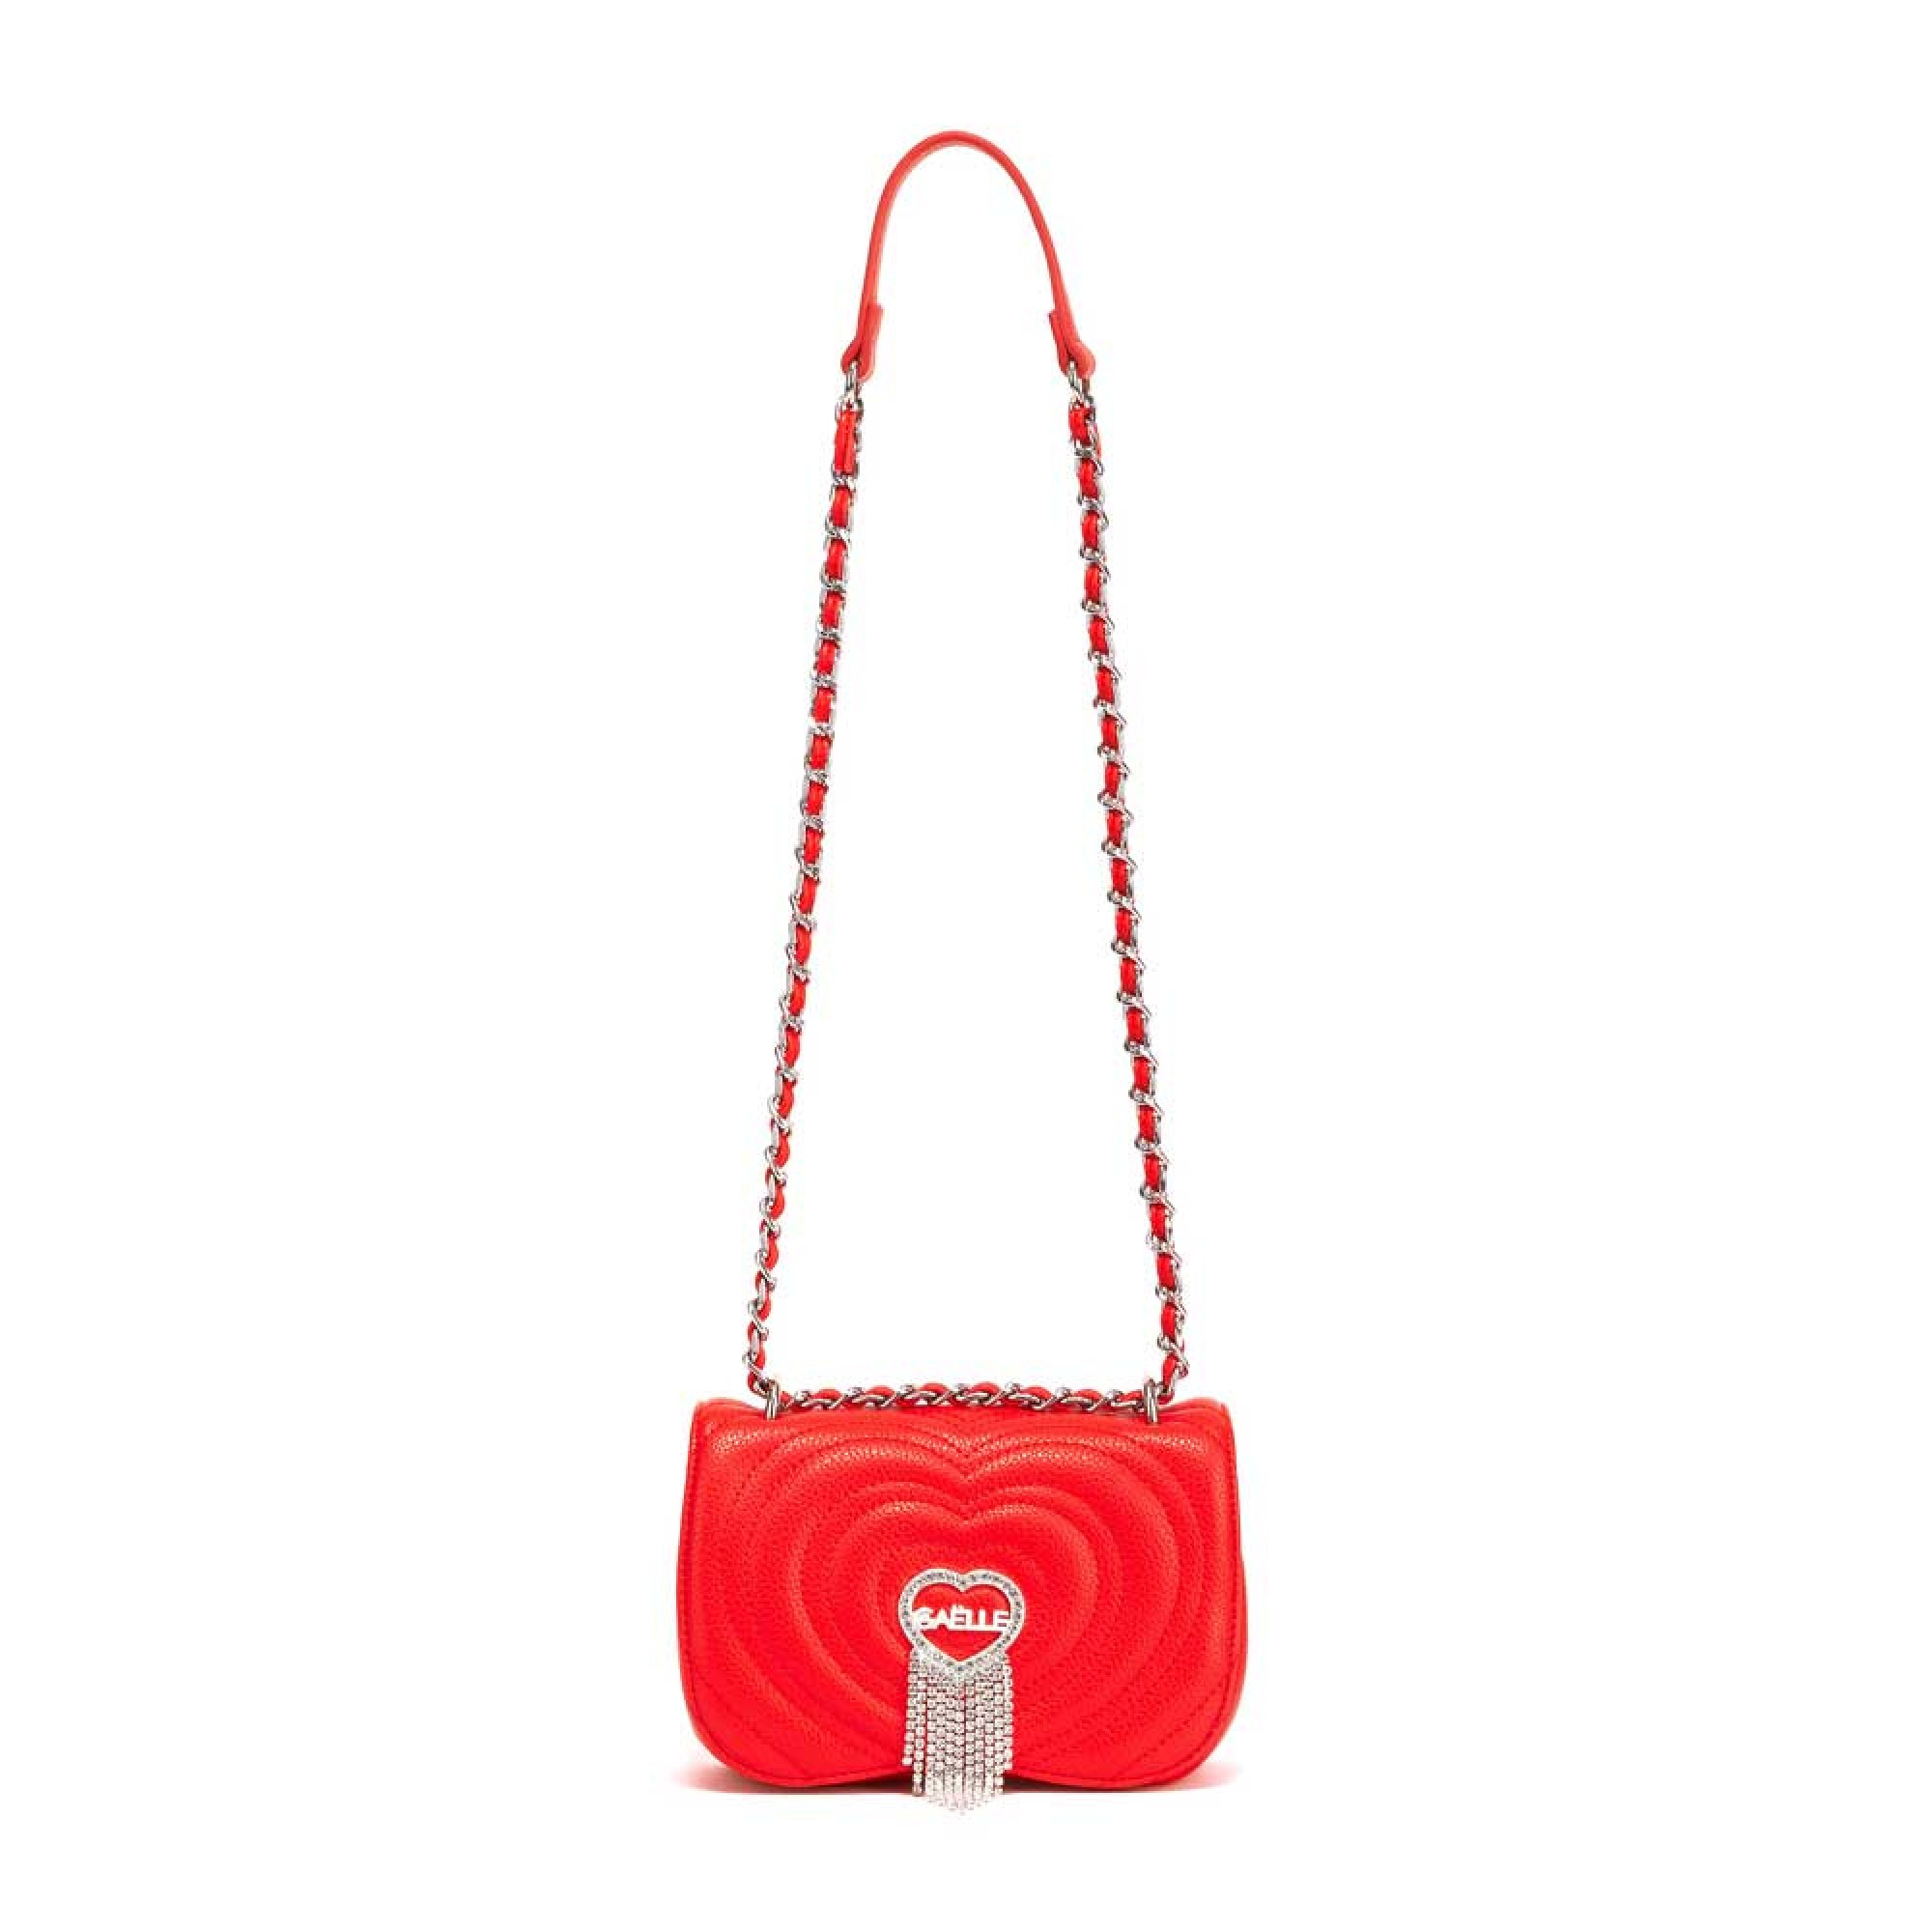 SHOULDER BAG - GBDA1492 - GAELLE PARIS